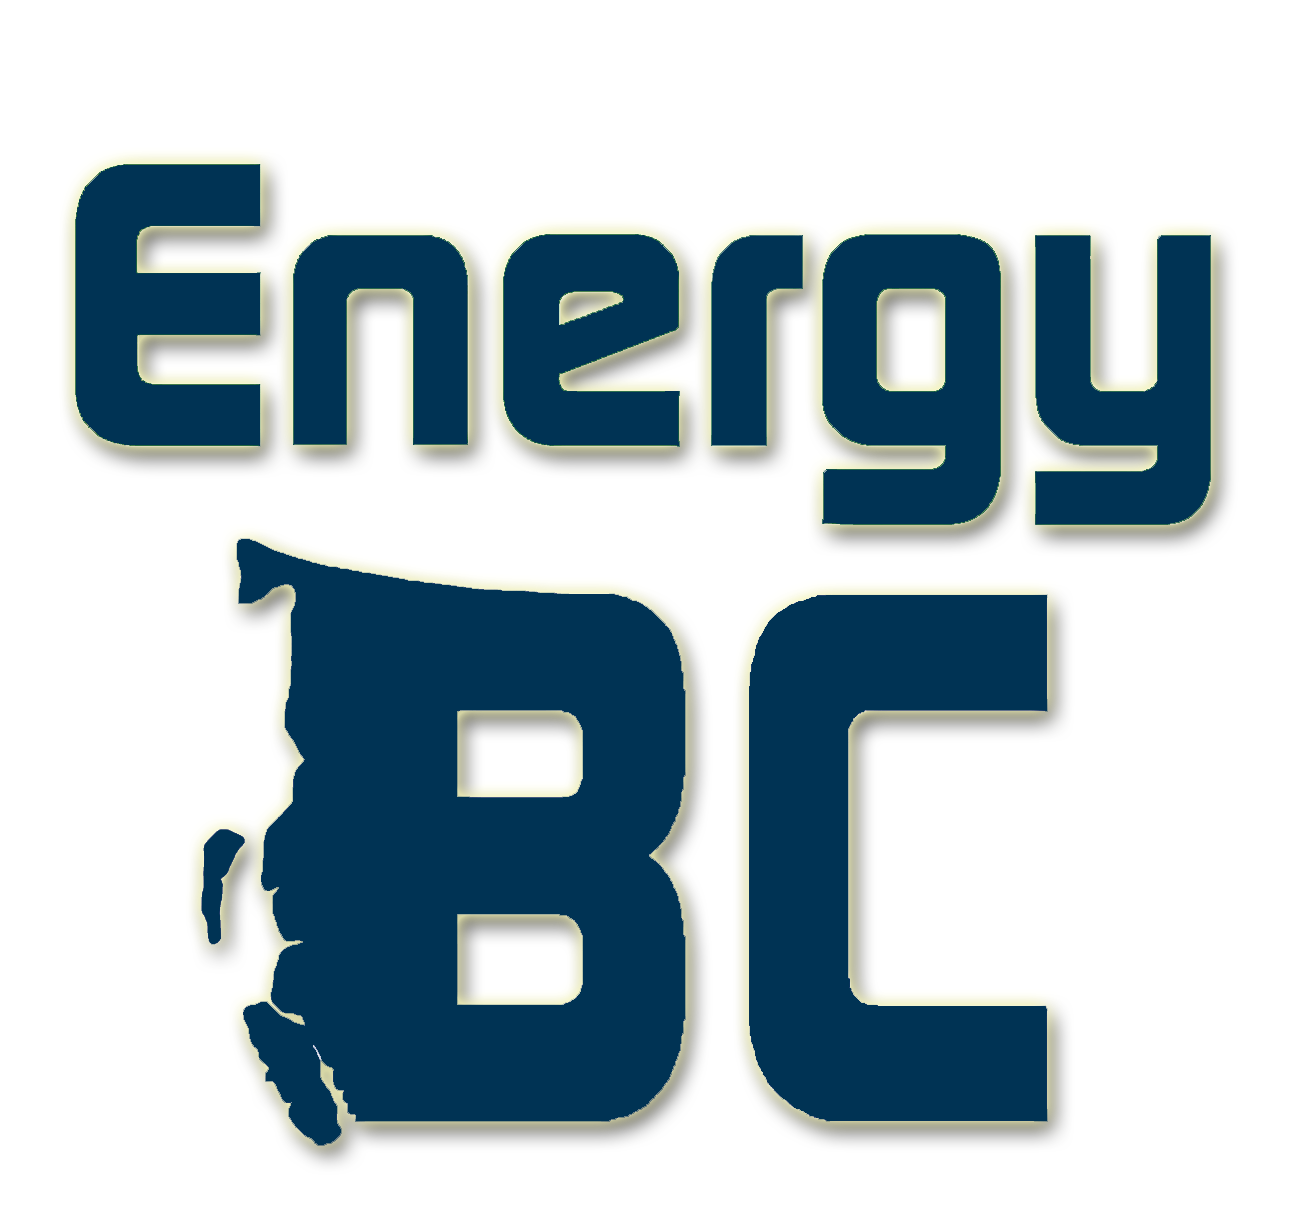 High Temperature Geothermal Power Energy British Columbia And Low Heat Engine Diagram Bc Logo